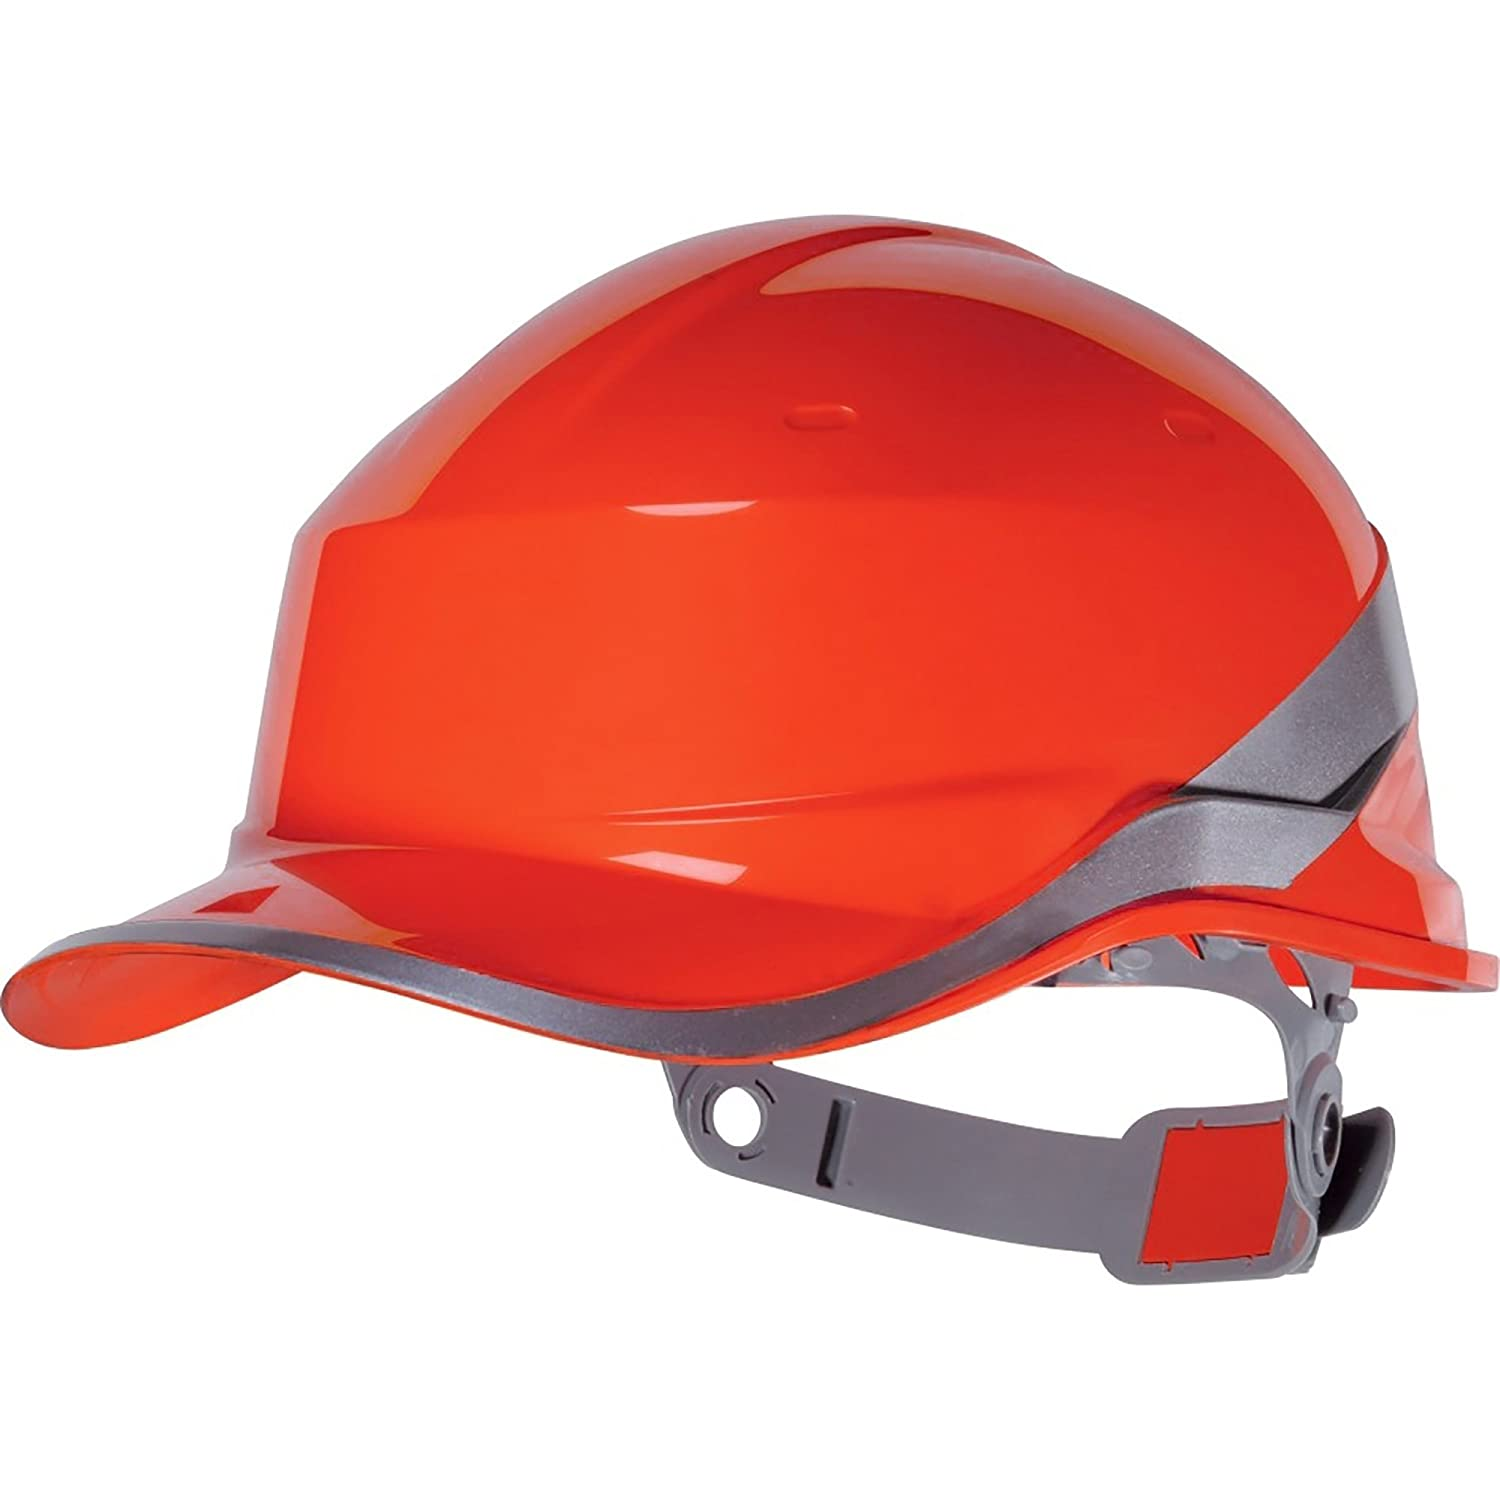 Venitex - Casque De Chantier Baseball Diamond - Taille : Ajustable 972